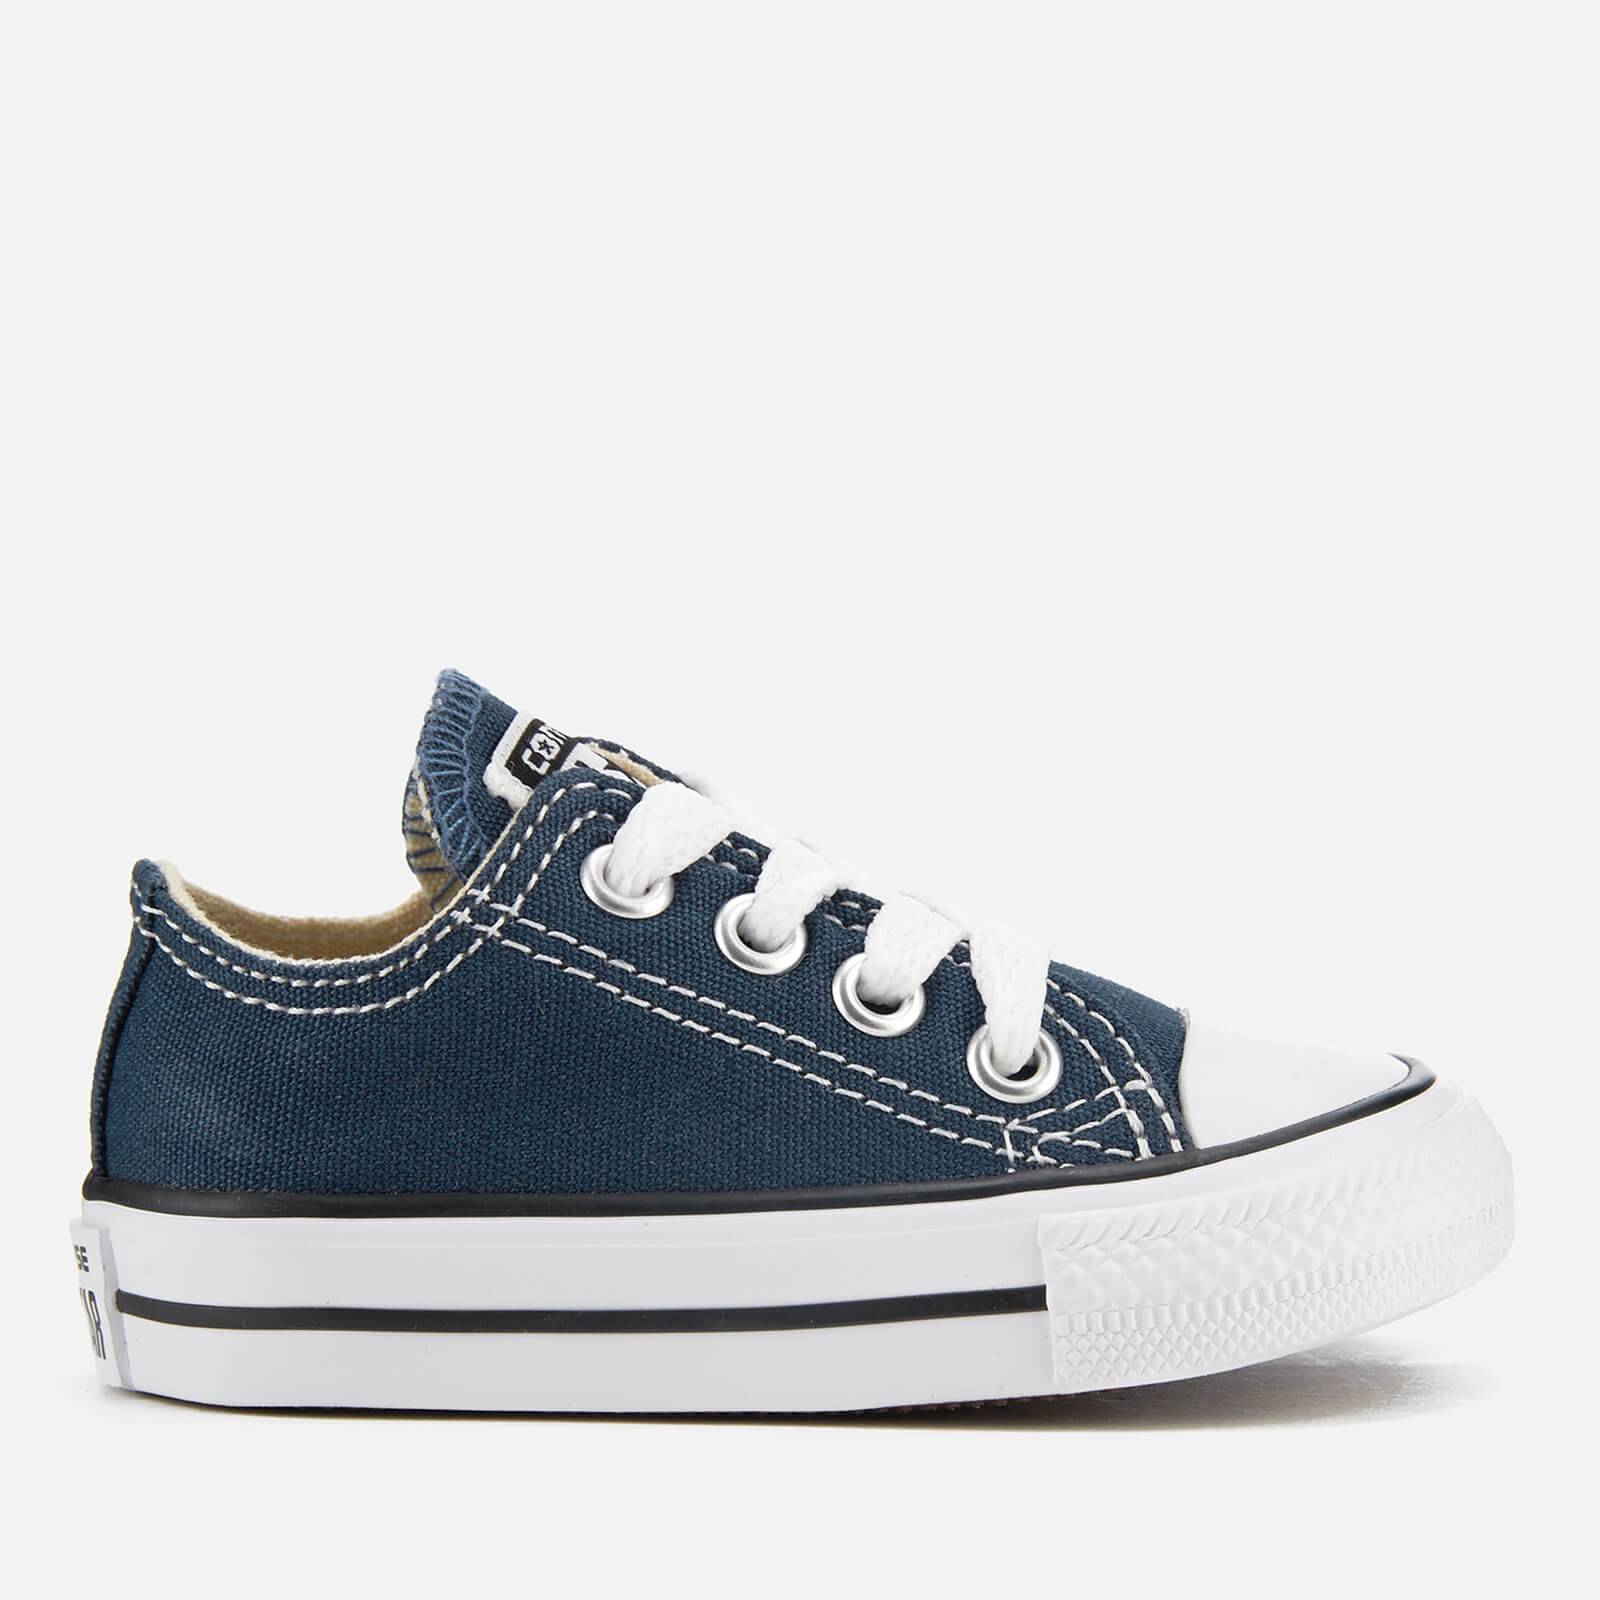 Converse Toddlers' Chuck Taylor All Star Ox Trainers - Navy - UK 2 Toddler